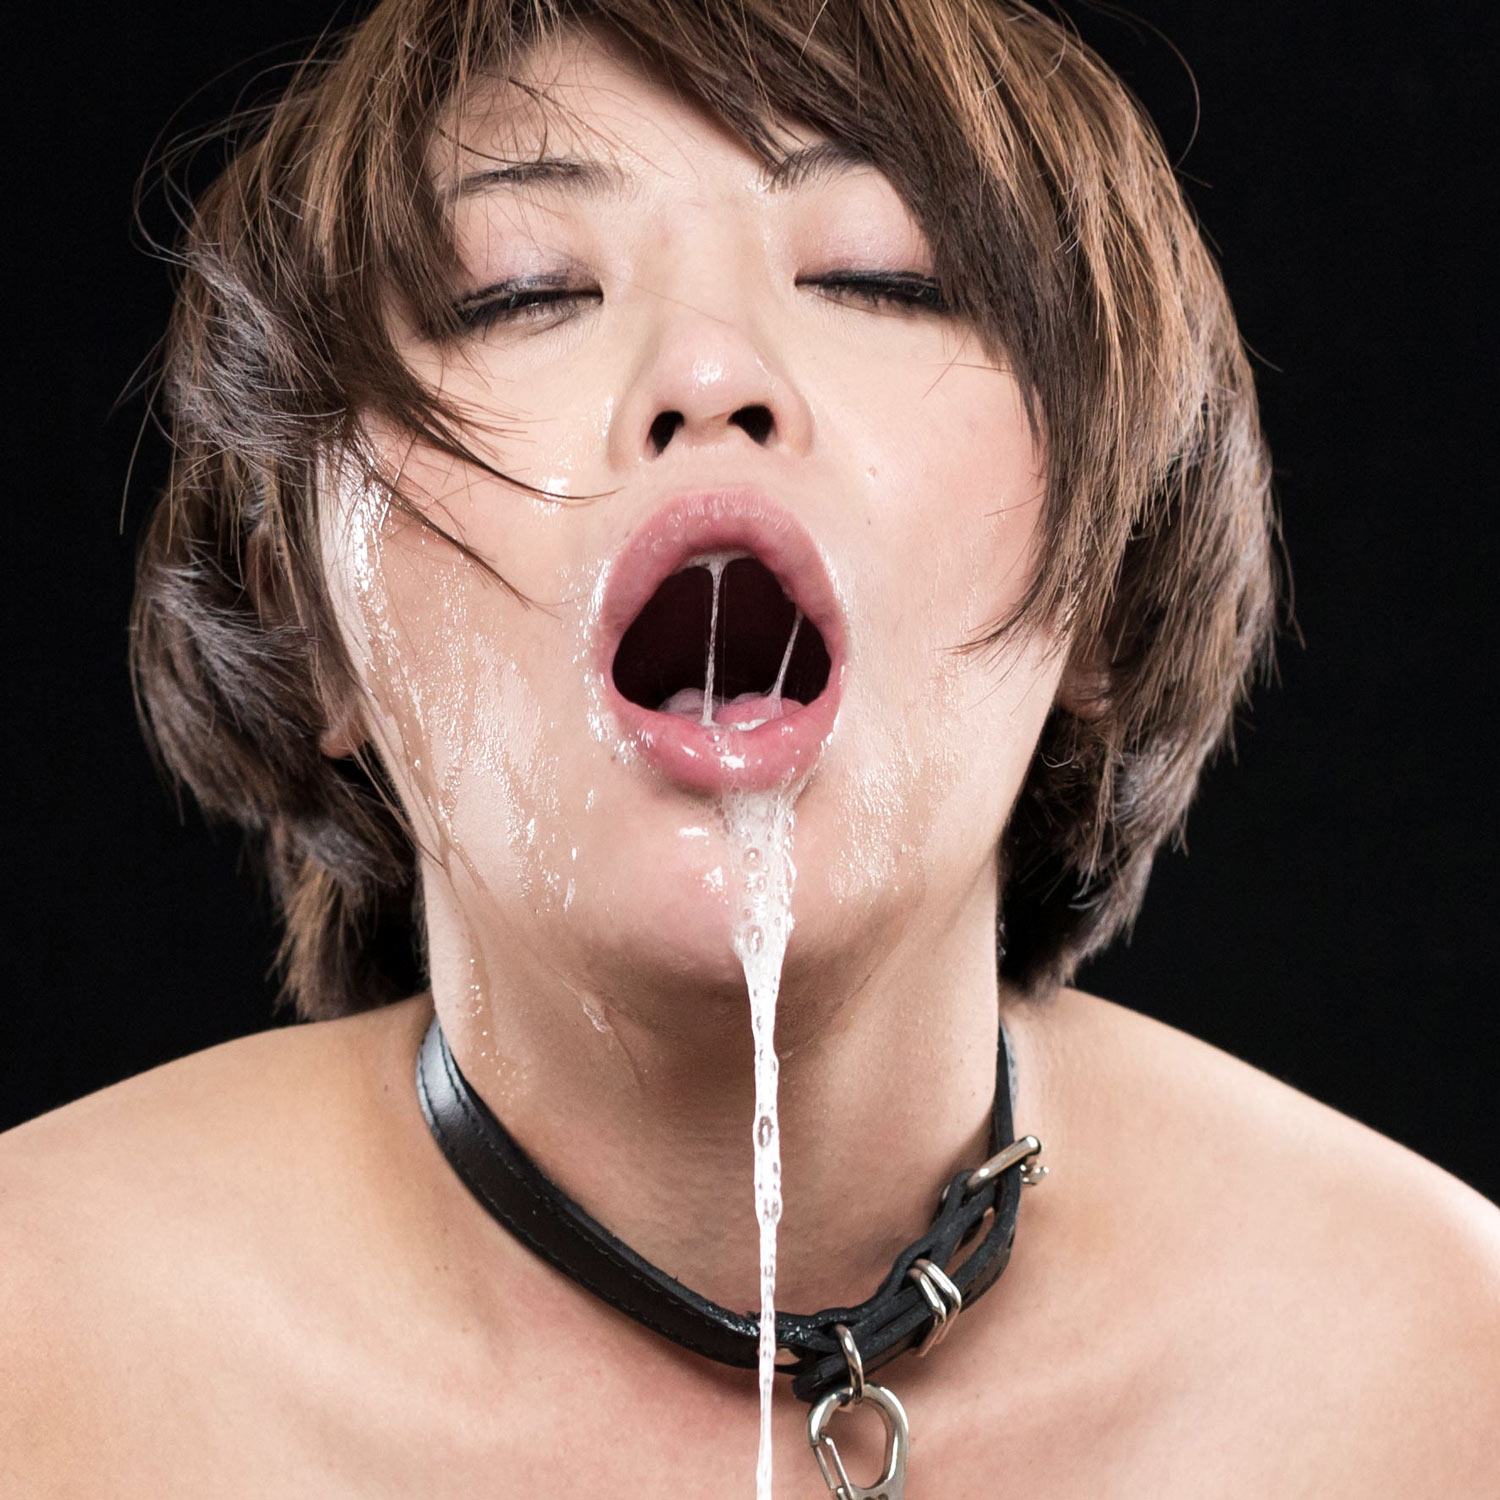 TokyoFaceFuck. Uncensored JAV facefuck fetish videos. Nude Japanese girls get their face fucked, their throats banged, their heads pounded, their mouths stuffed and their faces glaced .